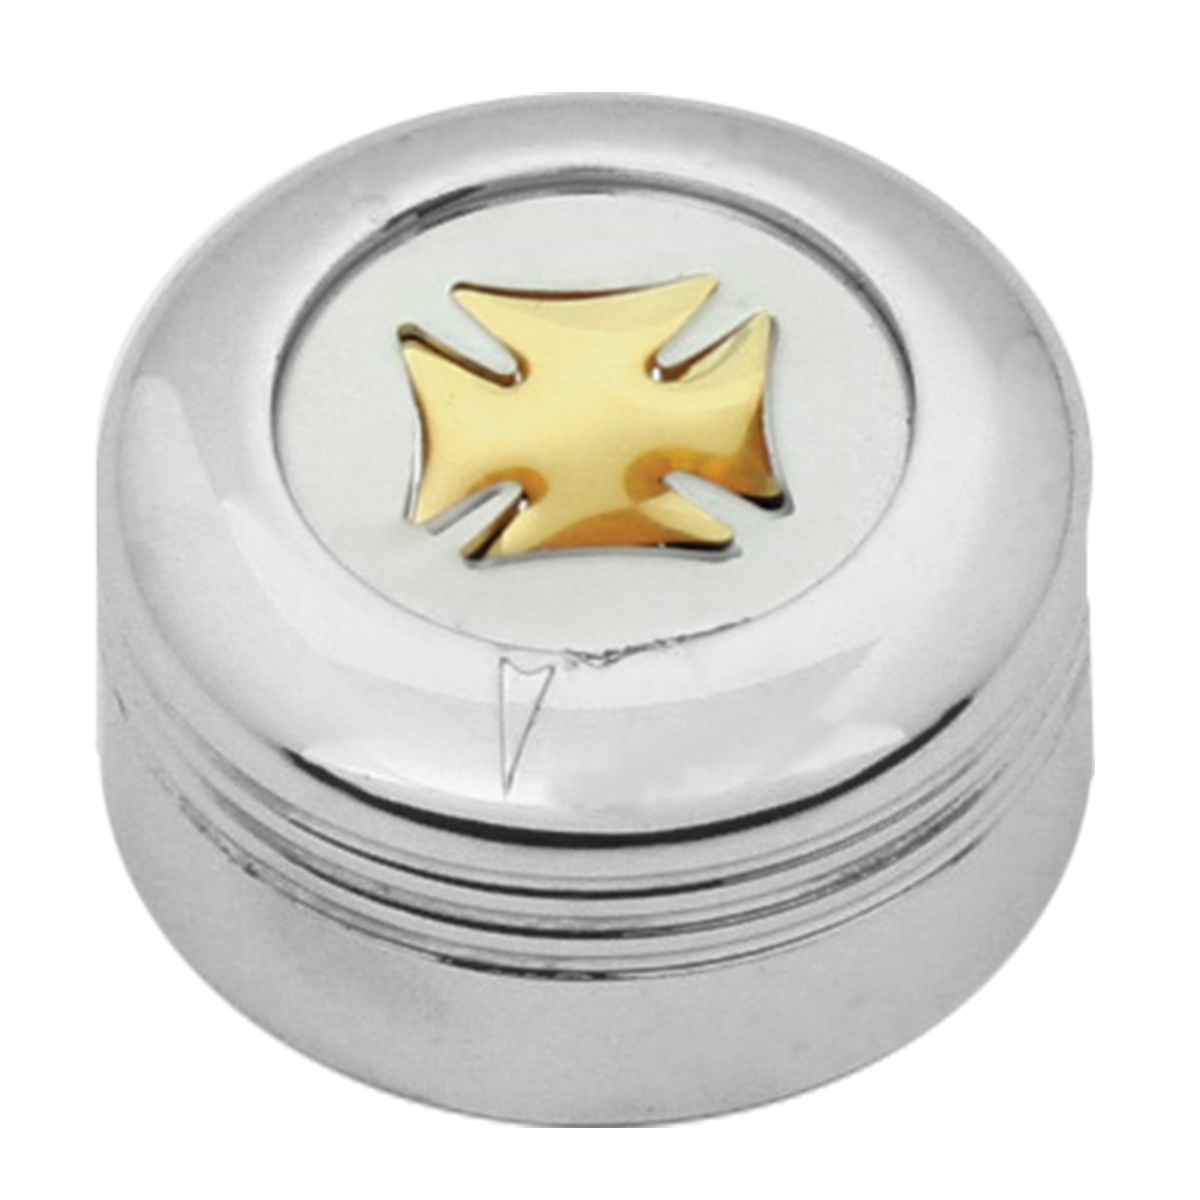 Chrome Plastic A/C Knob w/ Gold Iron Cross for Pete